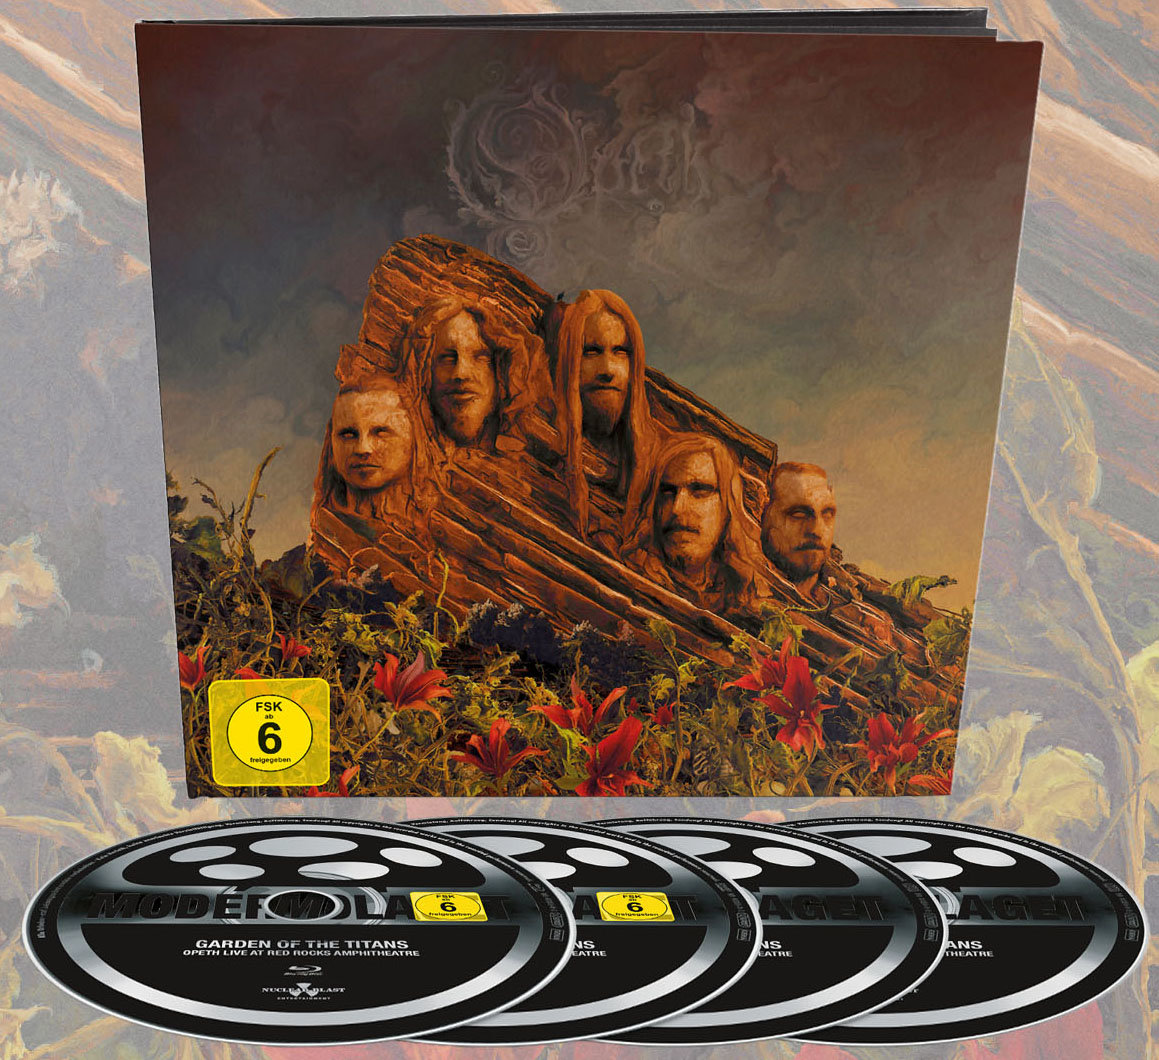 Opeth : Garden of The Titans - Live At Red Rocks Amphiteatre